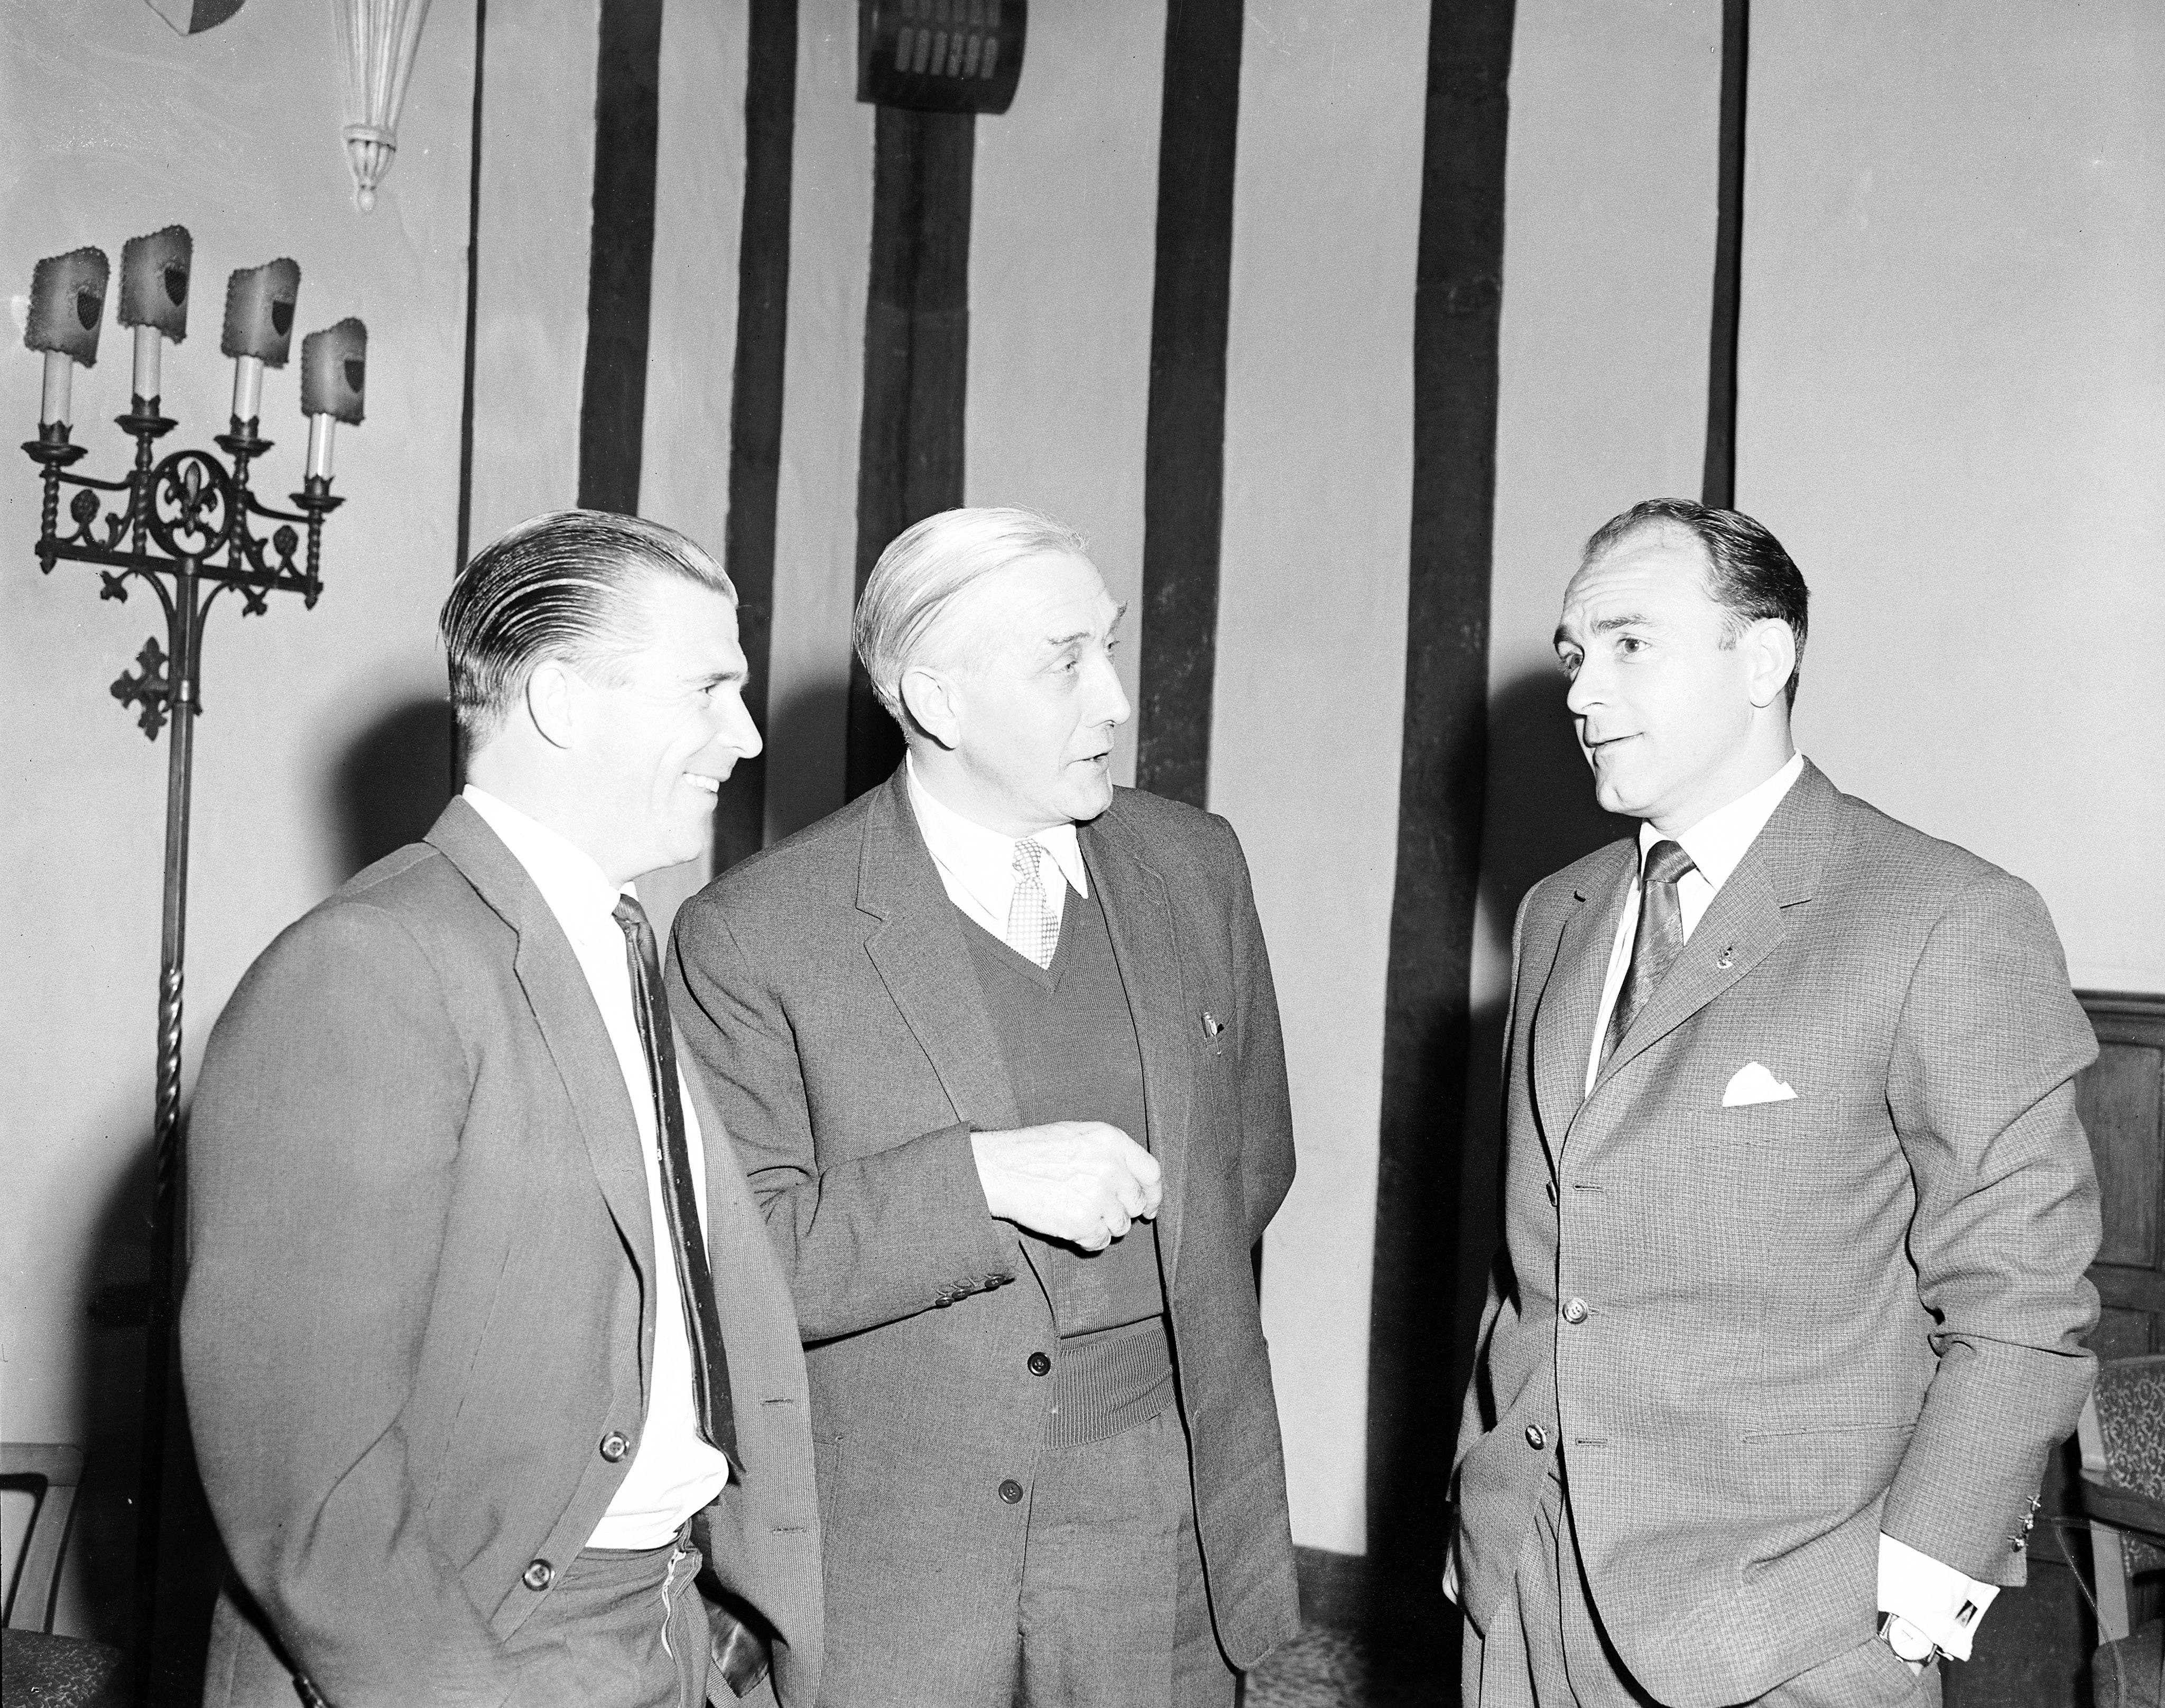 Soccer - Reception for Real Madrid Players at Park Lane Hotel Crystal Palace manager Arthur Rowe (c), whose team are to play Real Madrid in a friendly, chats with Madrid stars Ferenc Puskas (l) and Alfredo di Stefano (r) Date: 16/04/1962